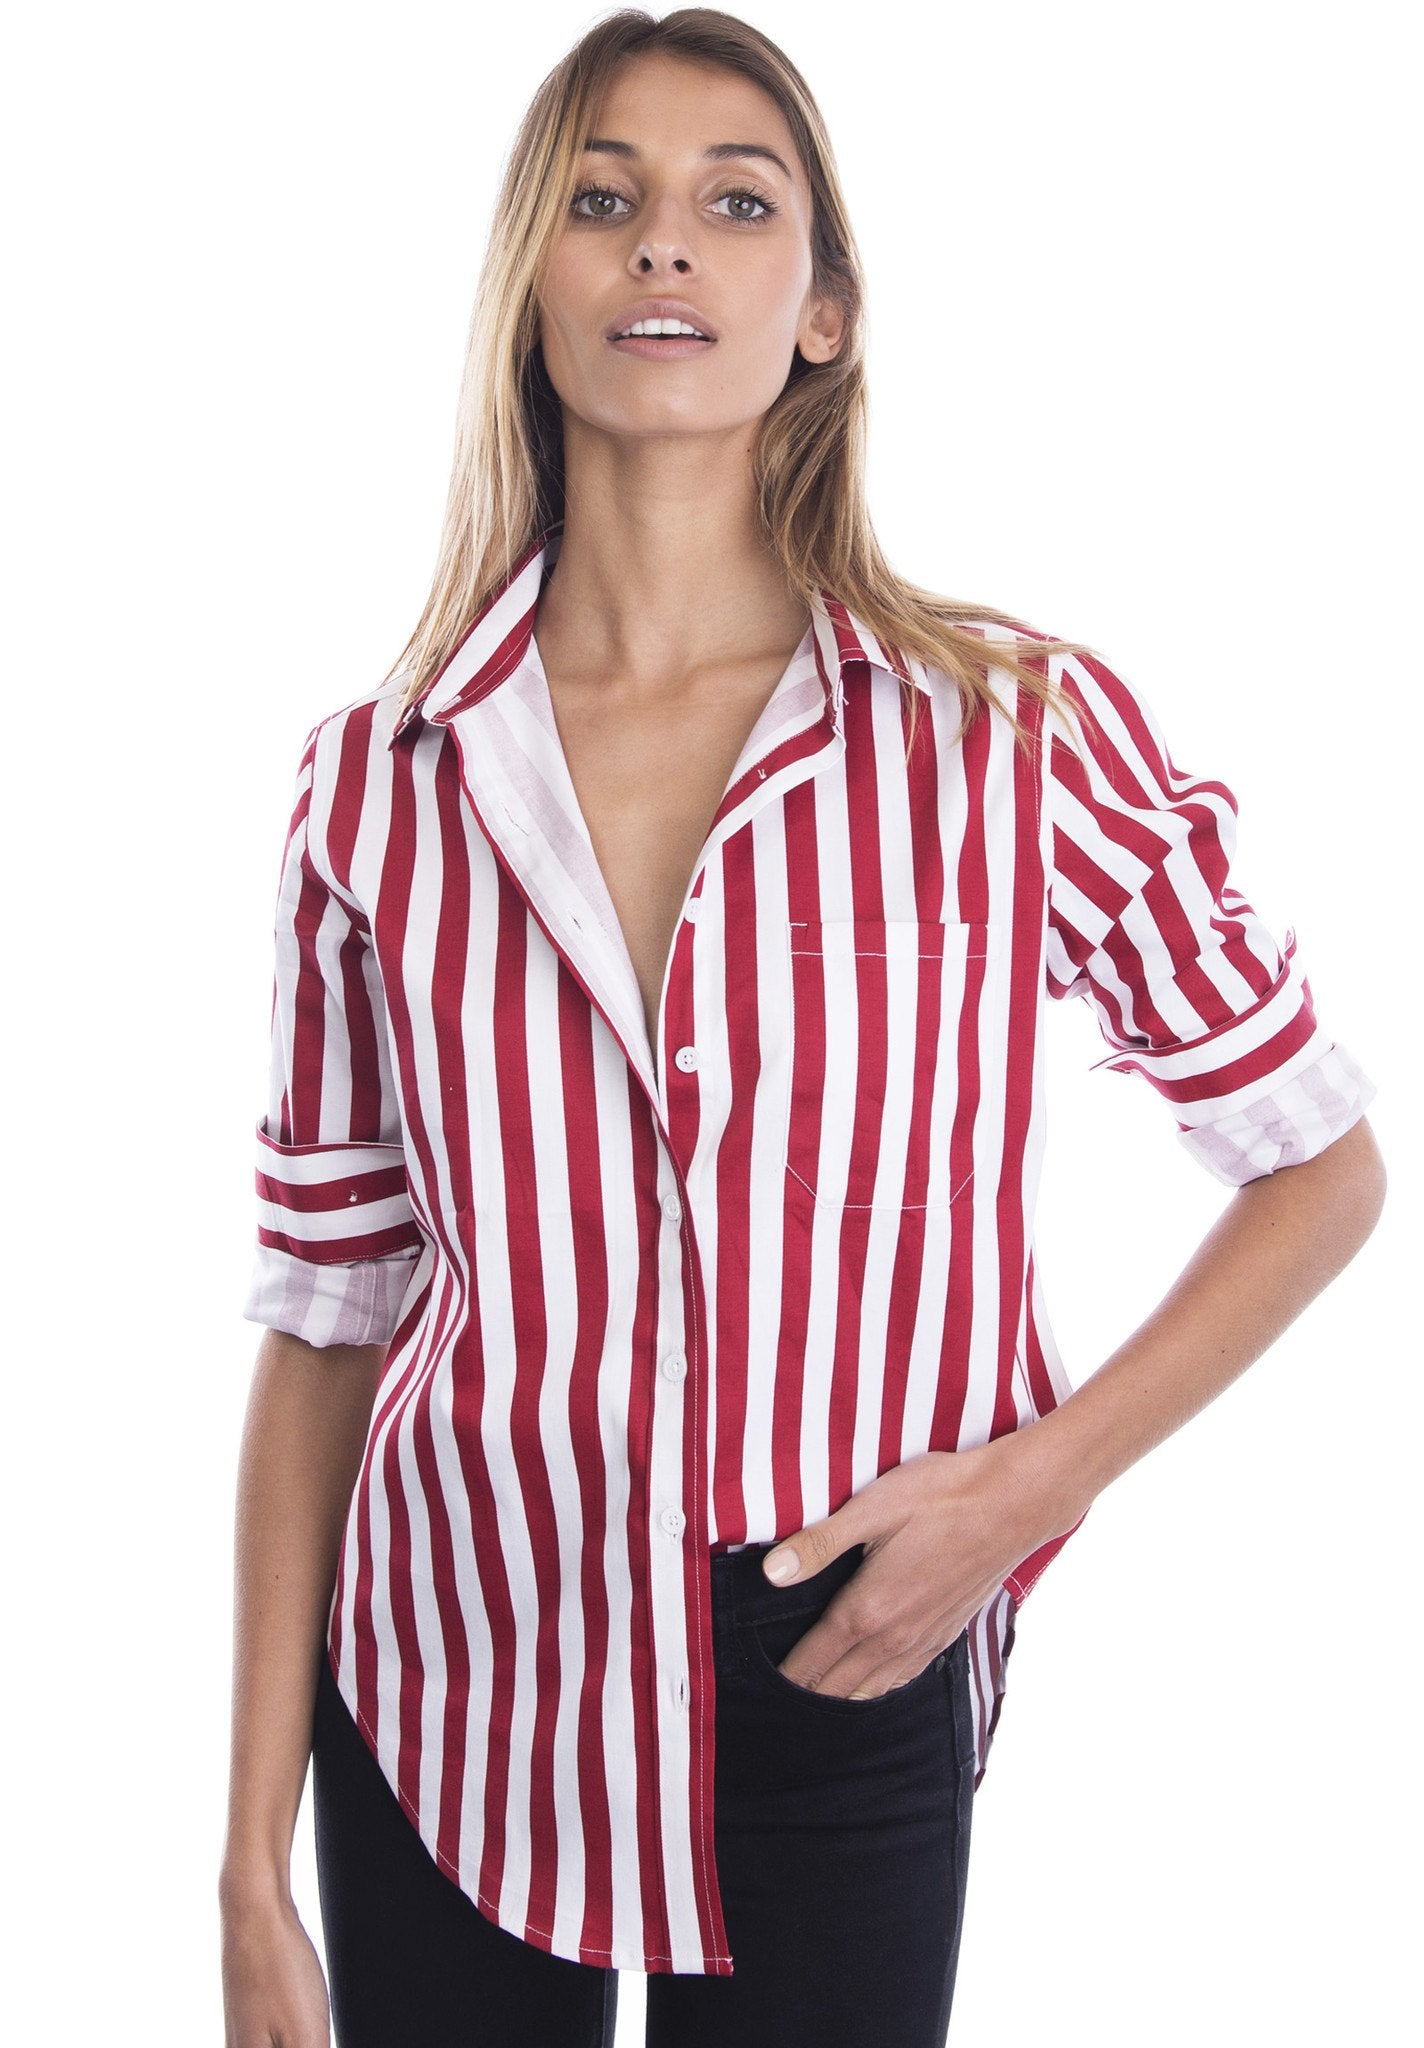 Regata Red and White Striped Boyfriend Shirt